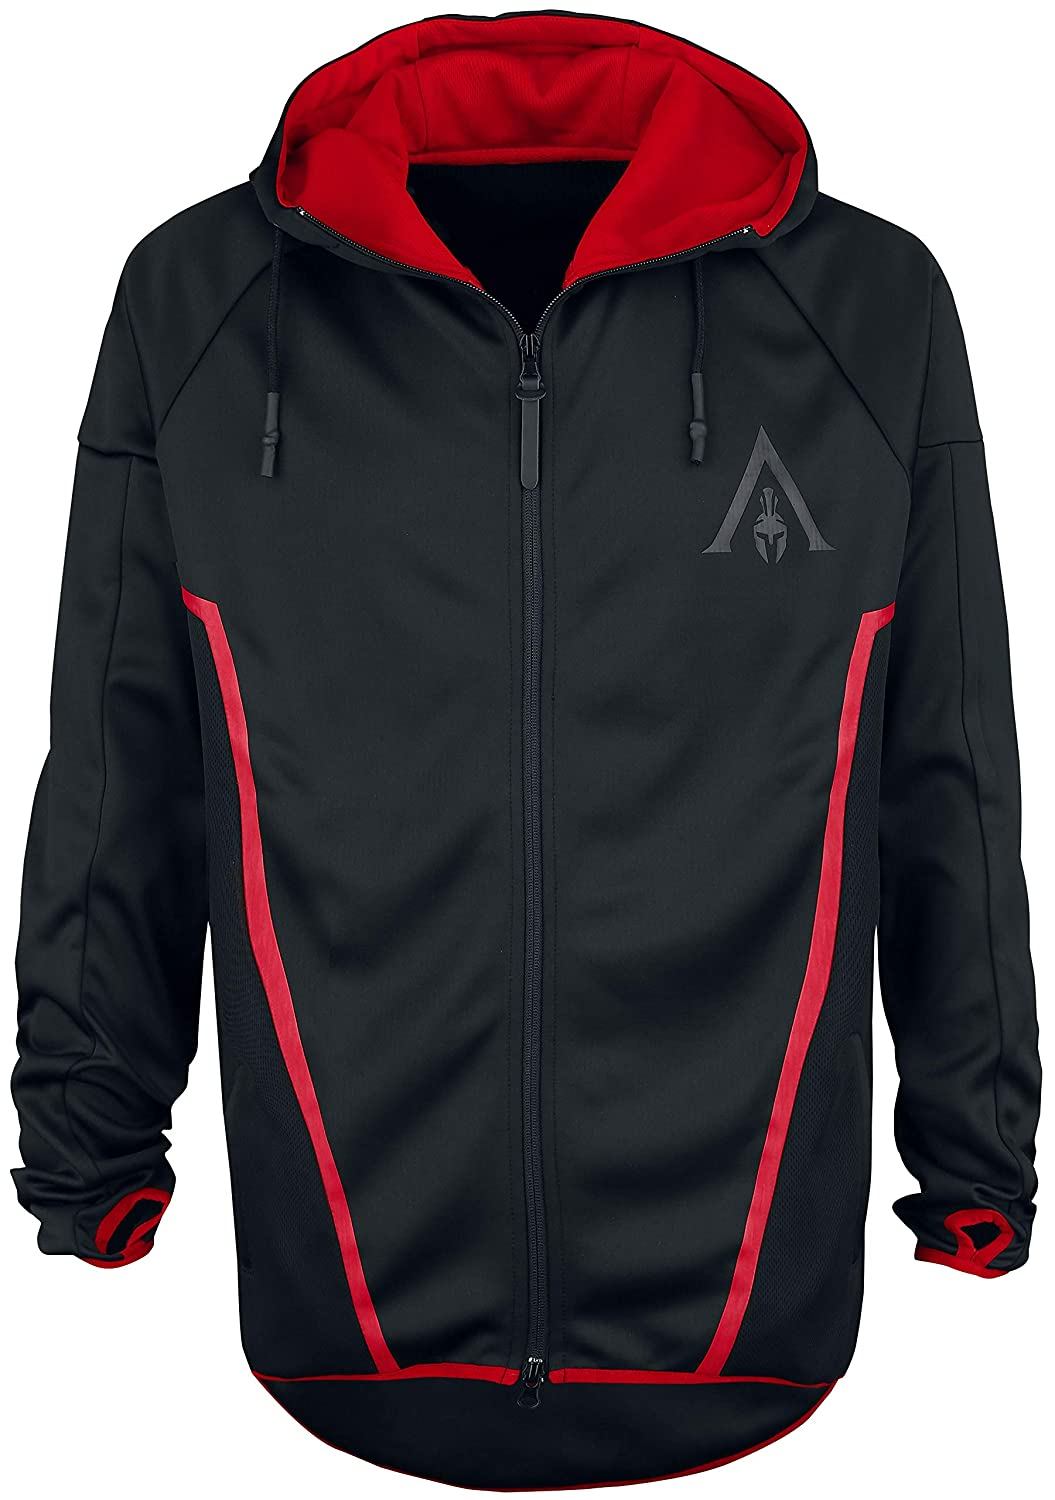 TALLA L. Assassin's Creed Odyssey - Technical Hexagonal Sudadera Capucha con Cremallera Negro